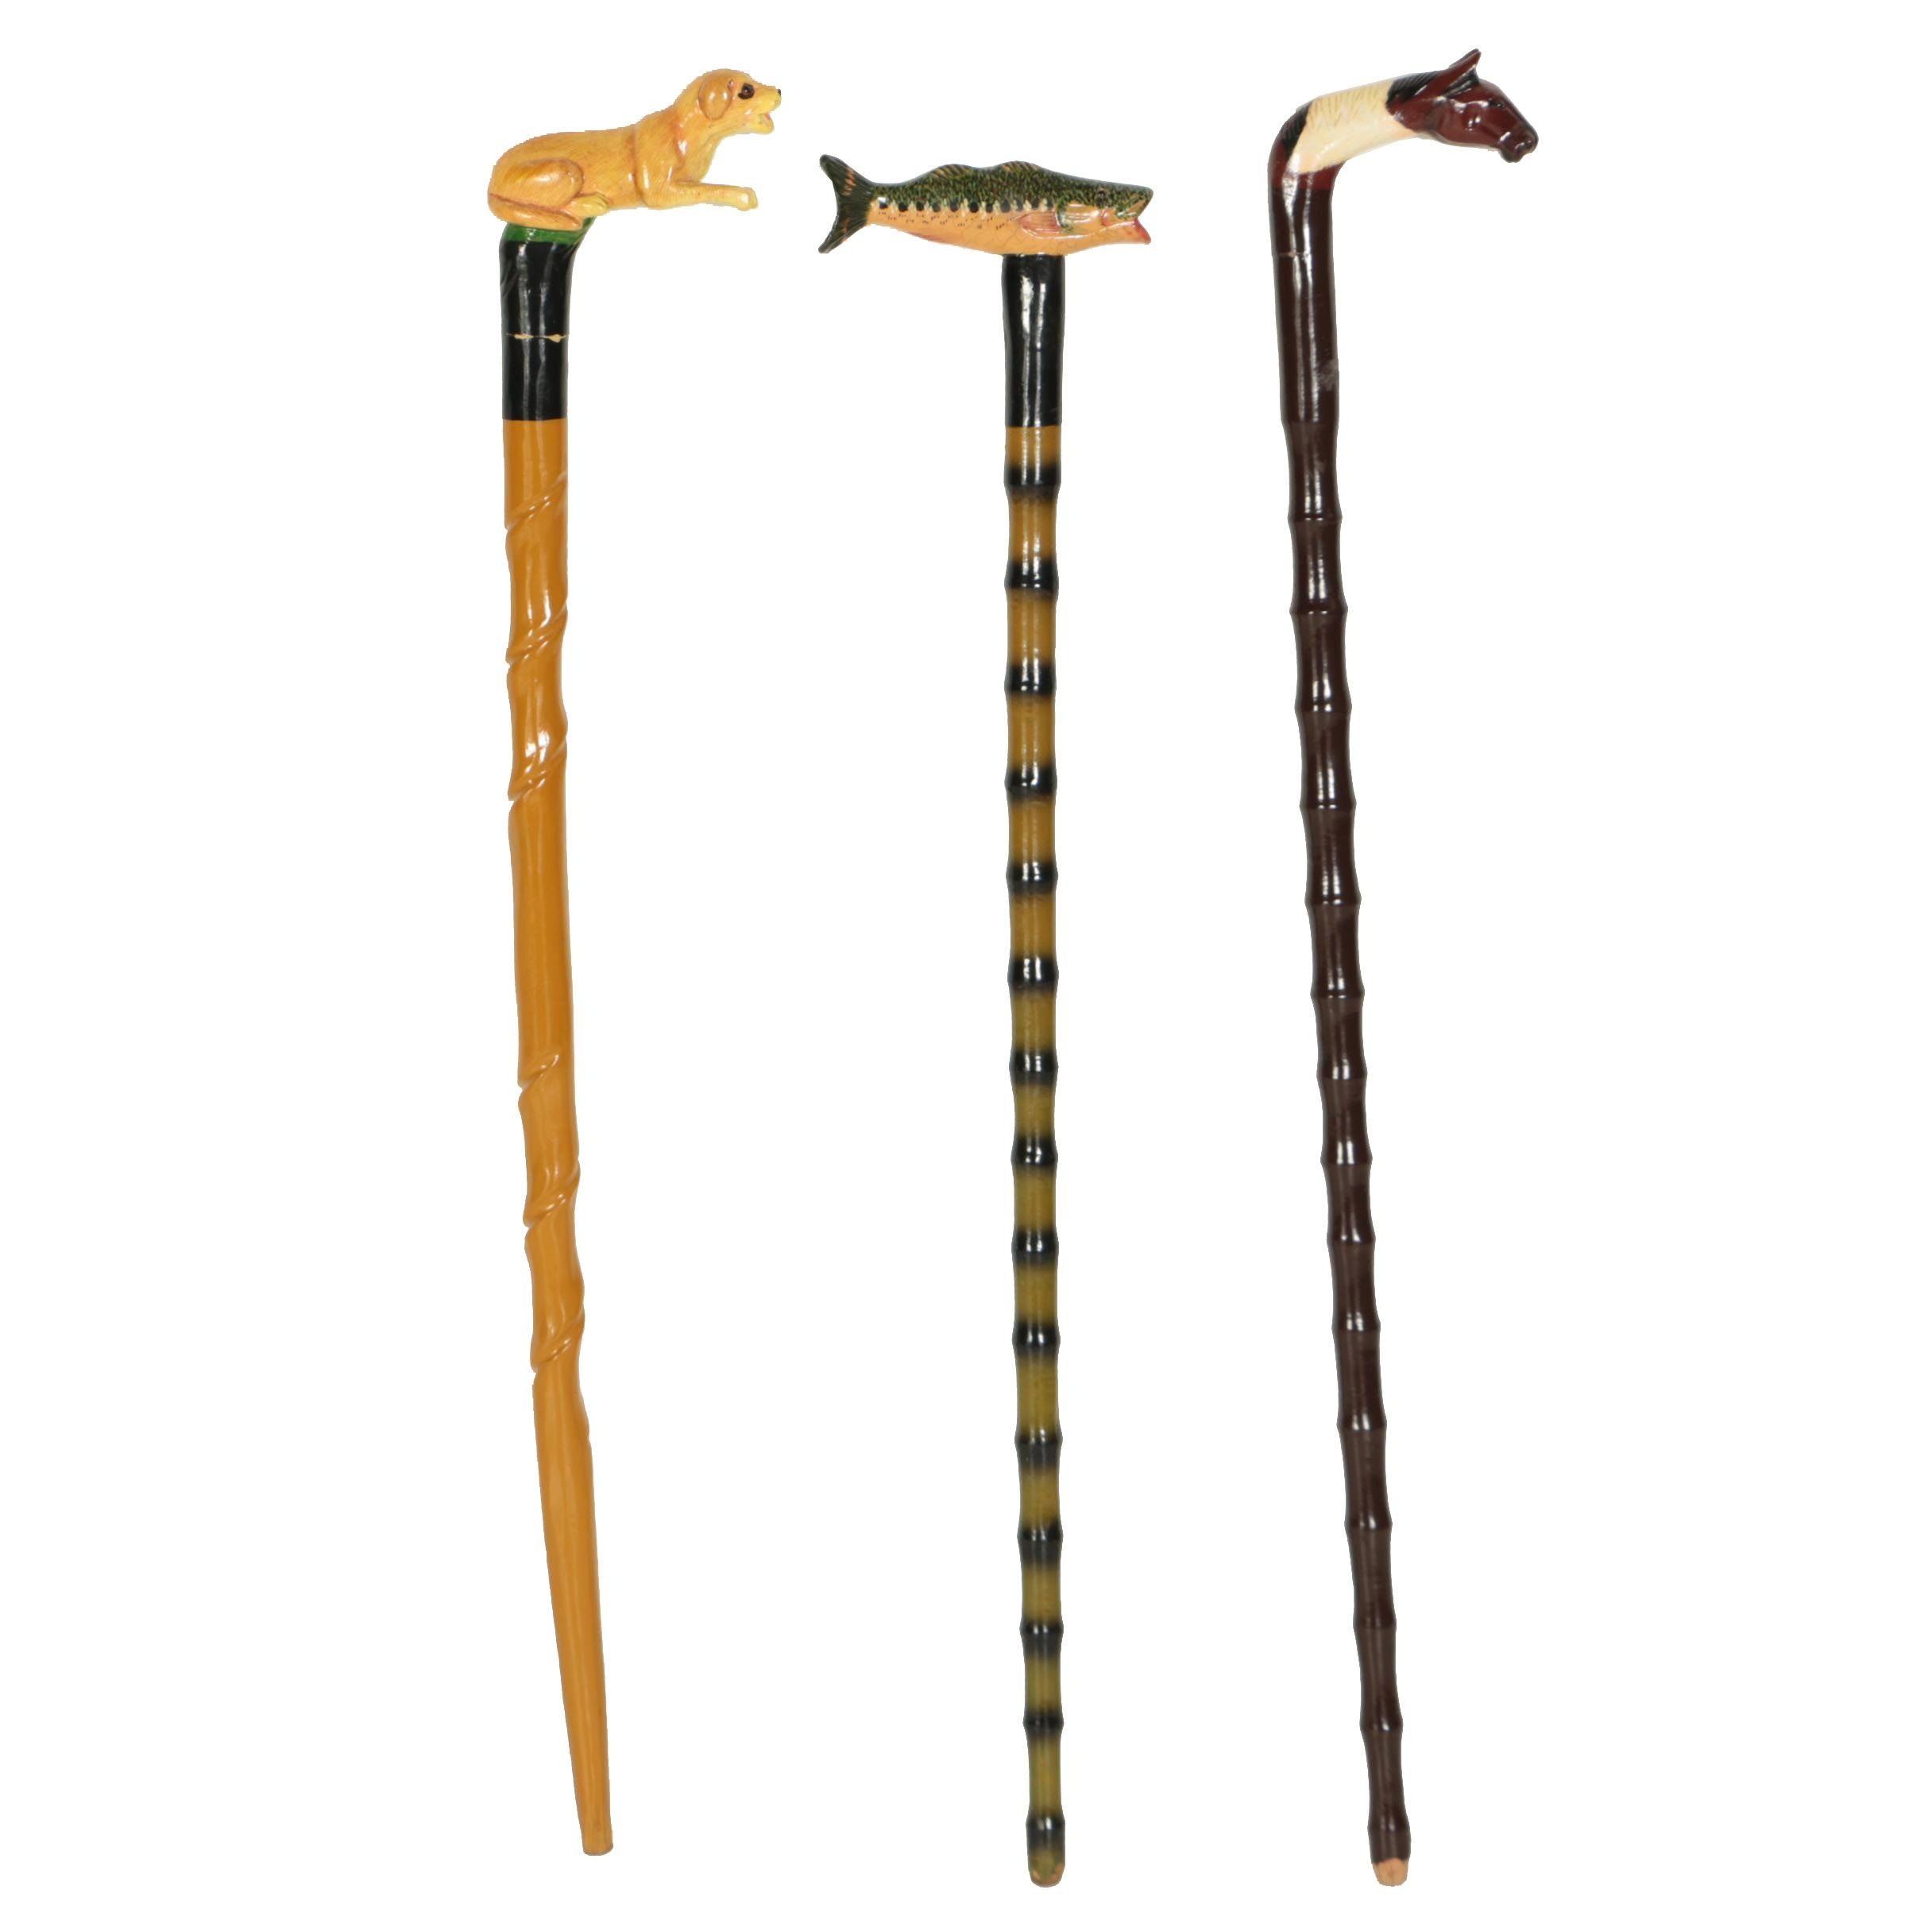 Three Hand Carved Folk Art Walking Sticks